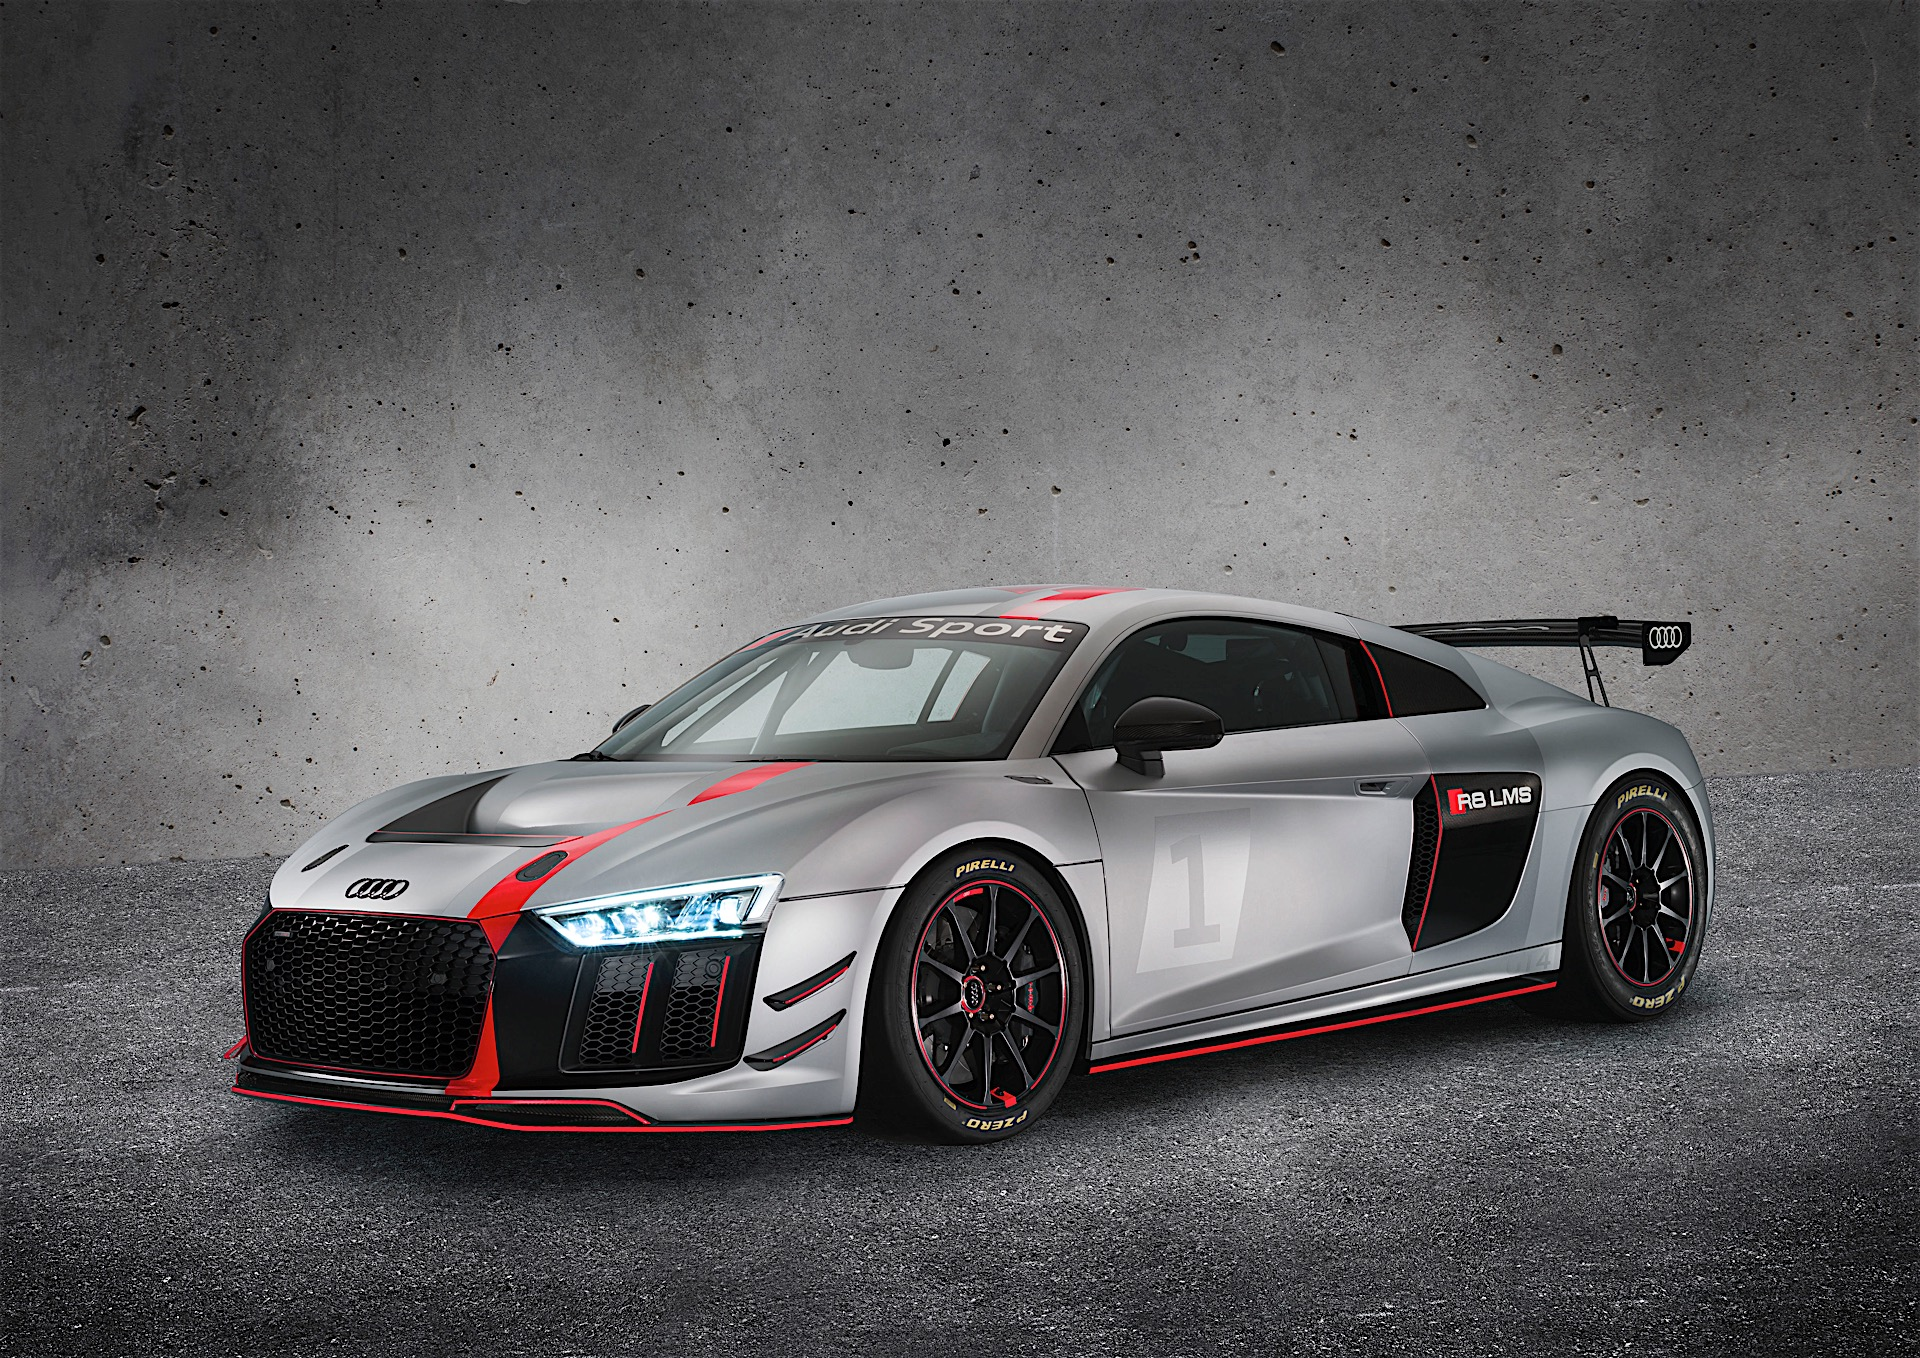 2017 Audi R8 Gt4 Unveiled It S The Race Version That S